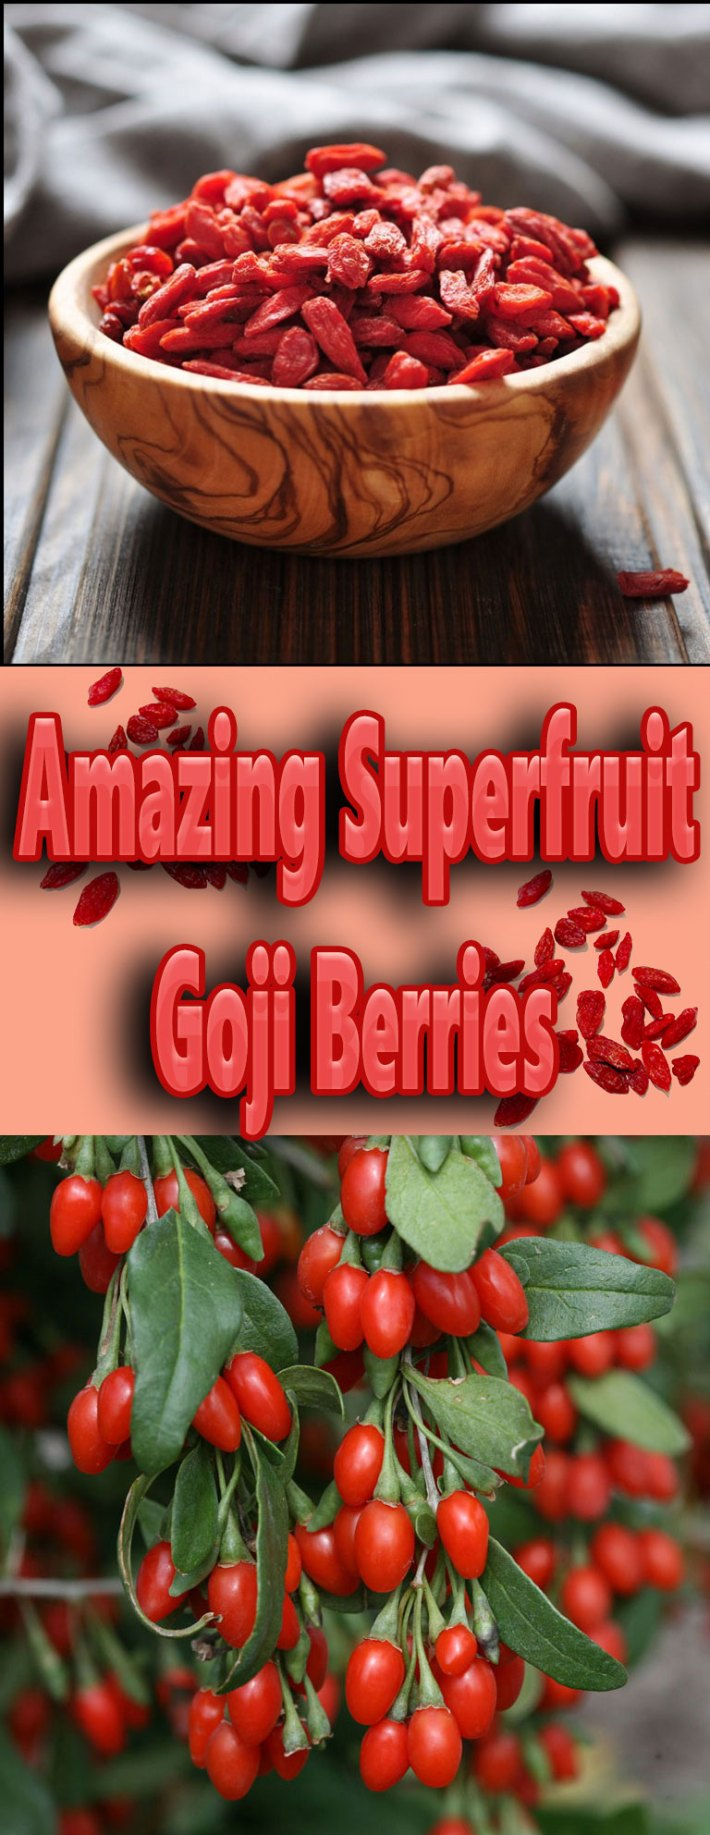 Amazing Superfruit – Goji Berries